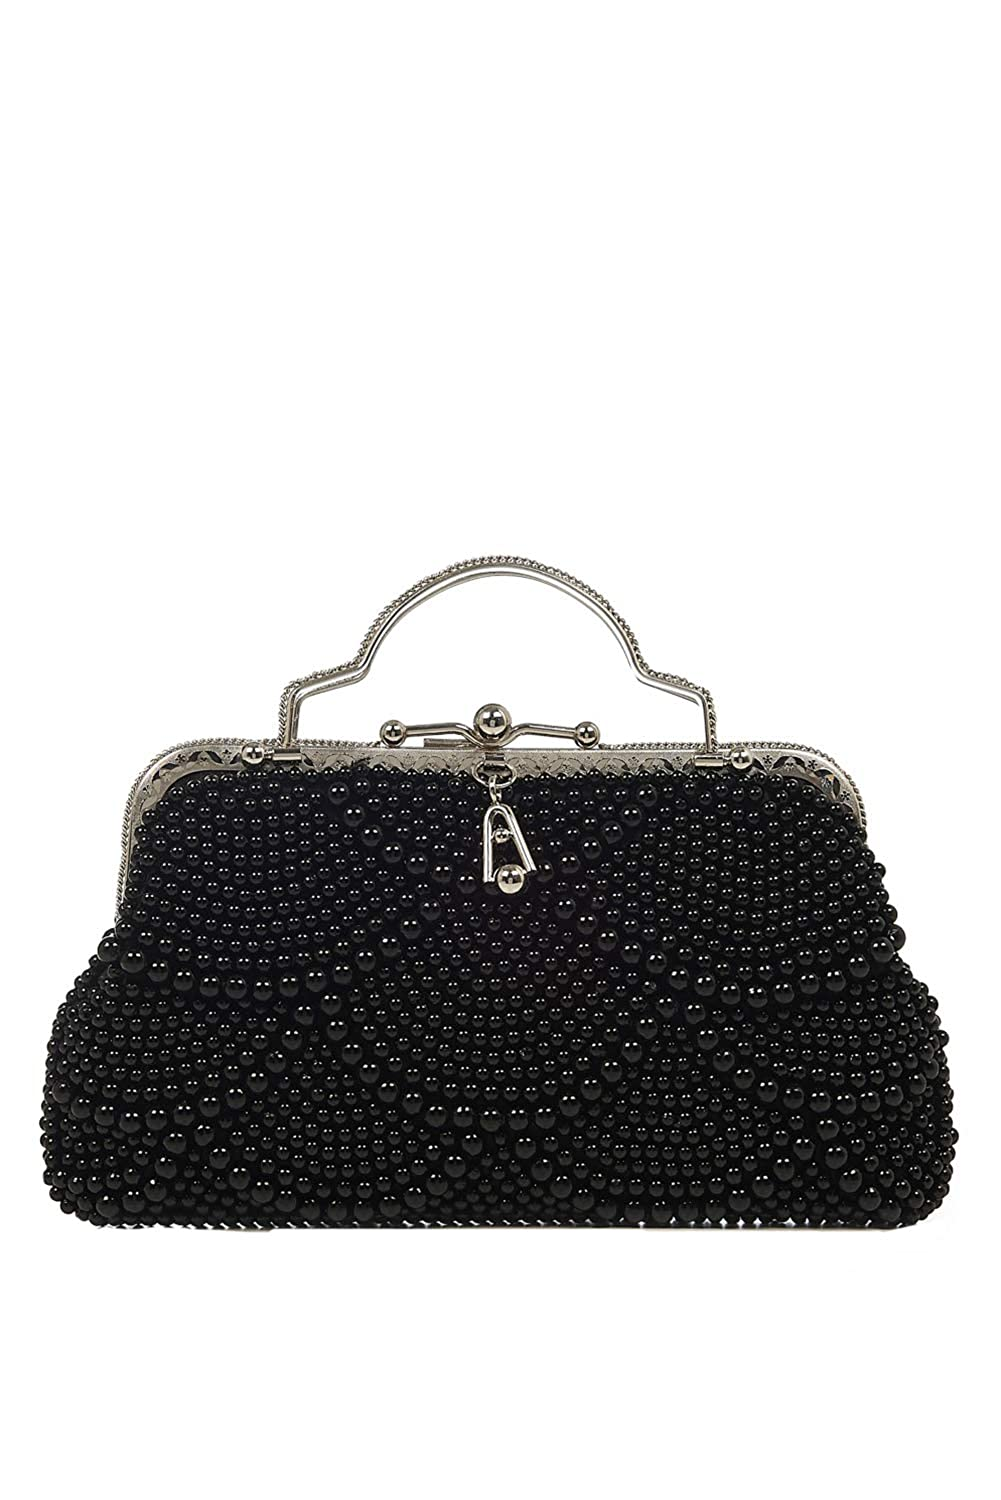 Banned Agnes 20s Pochette One Size